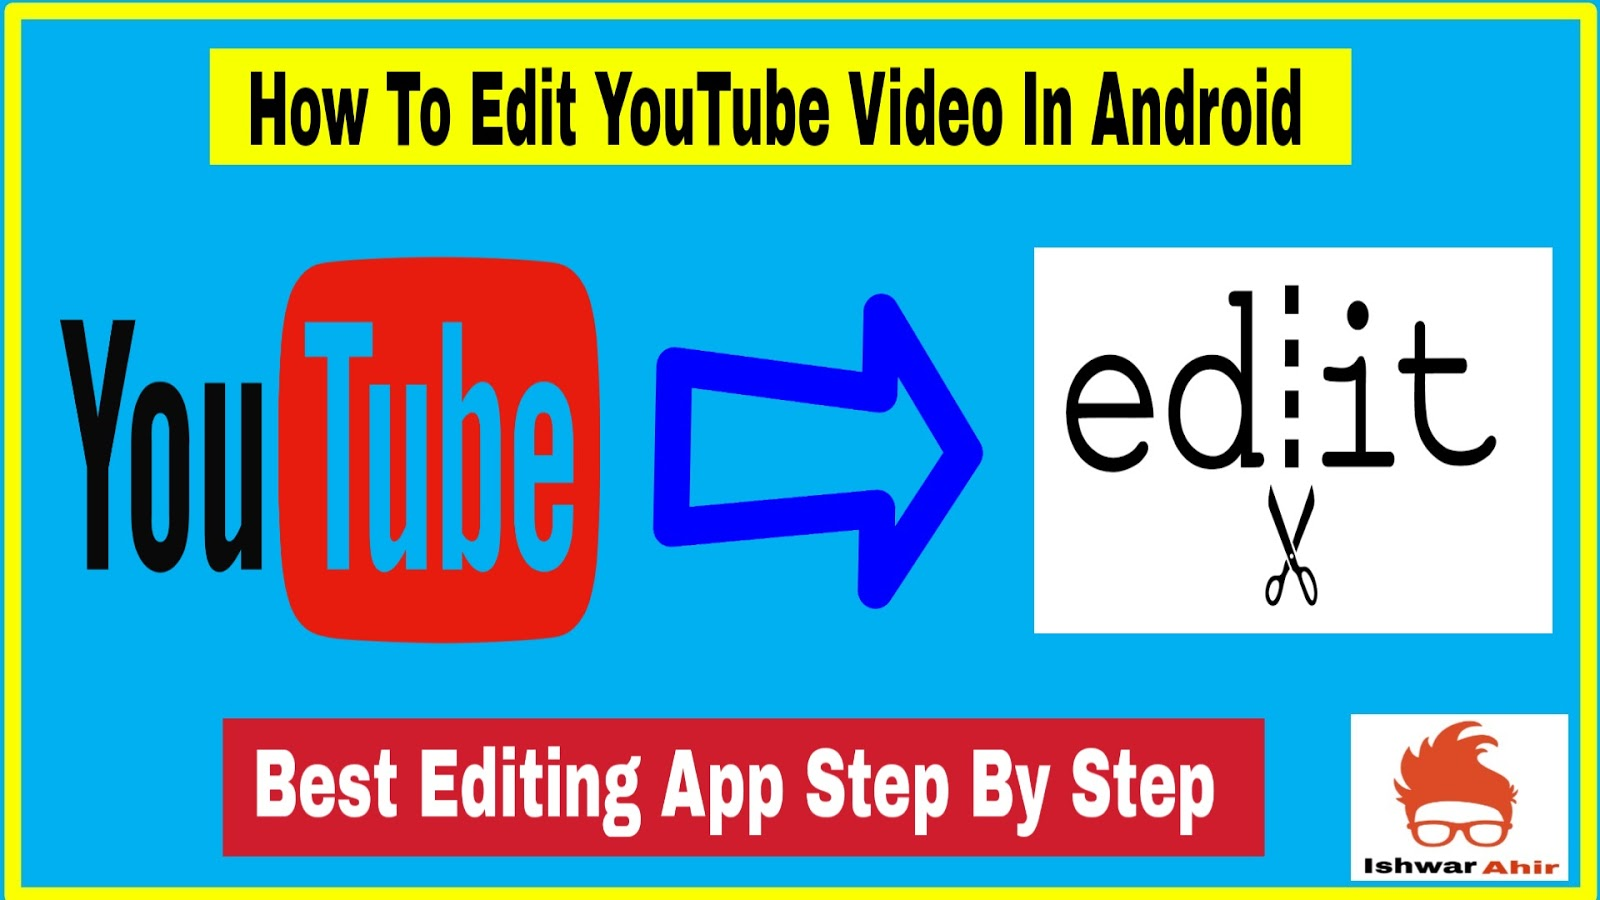 How to Edit Youtube Video in Android